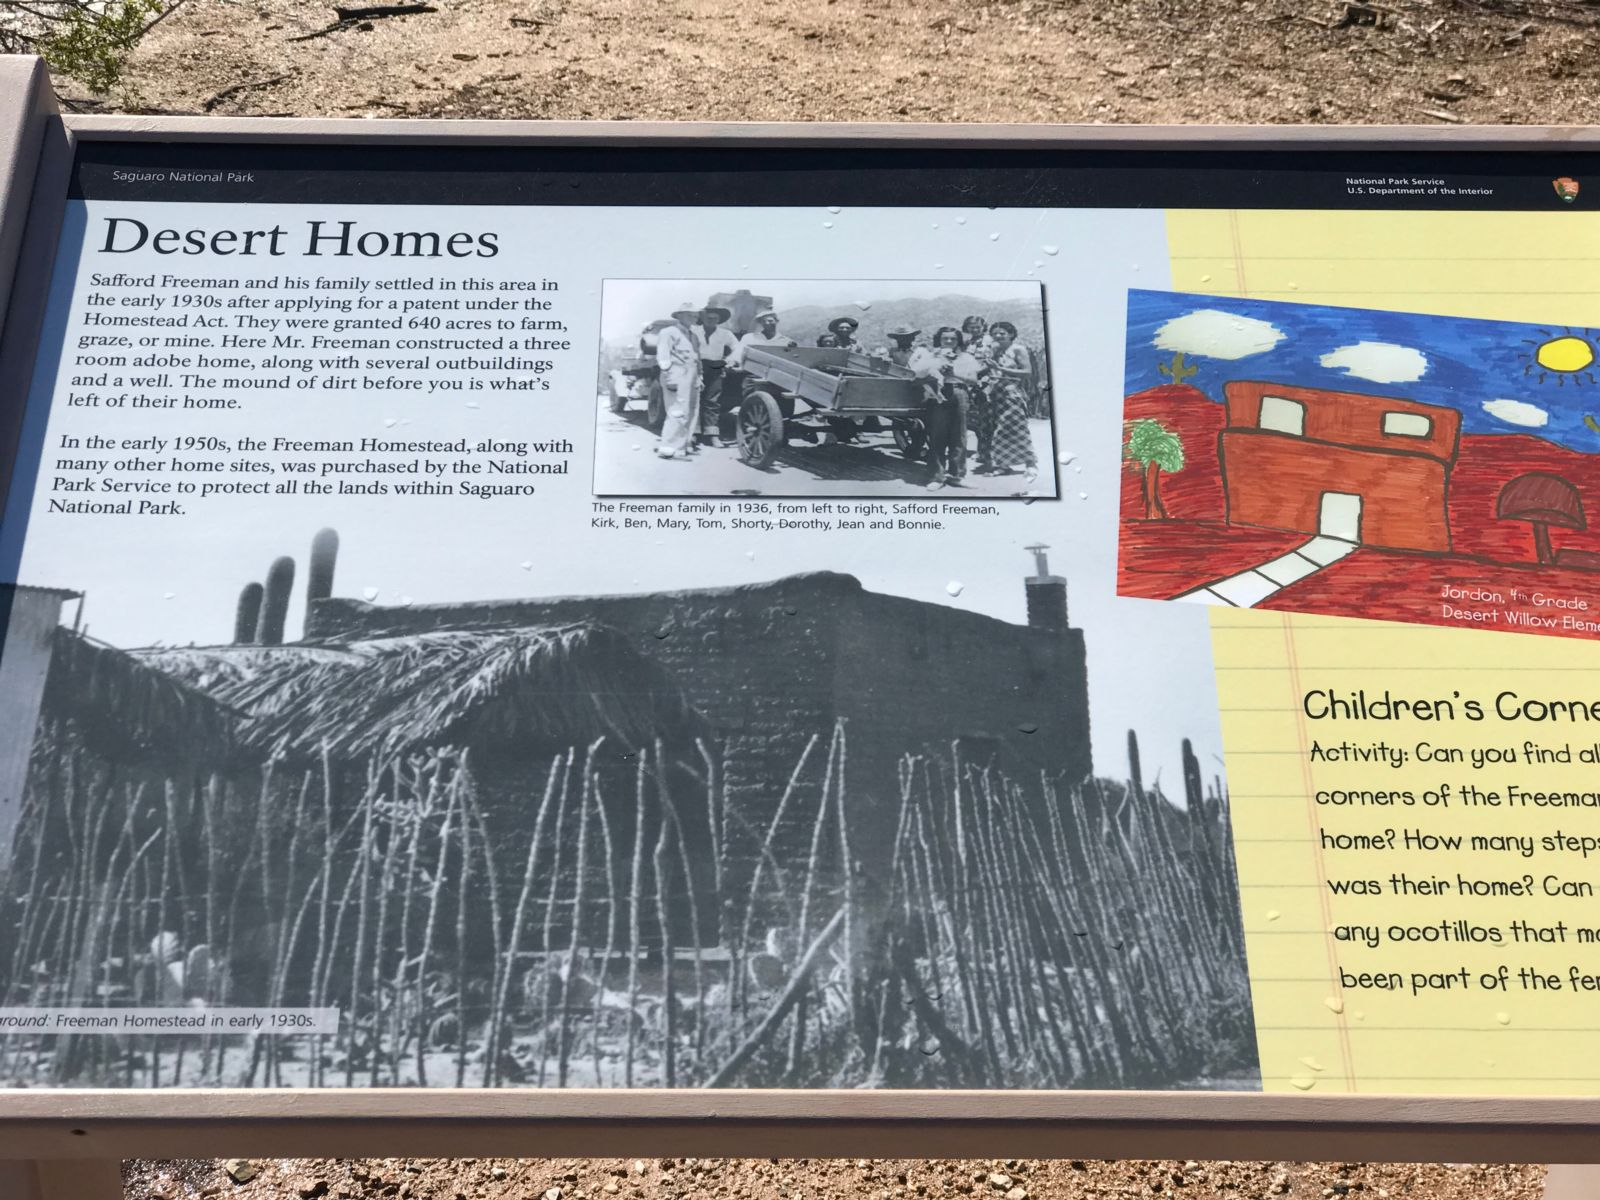 Saguaro National Park plaque with information on Desert Homes